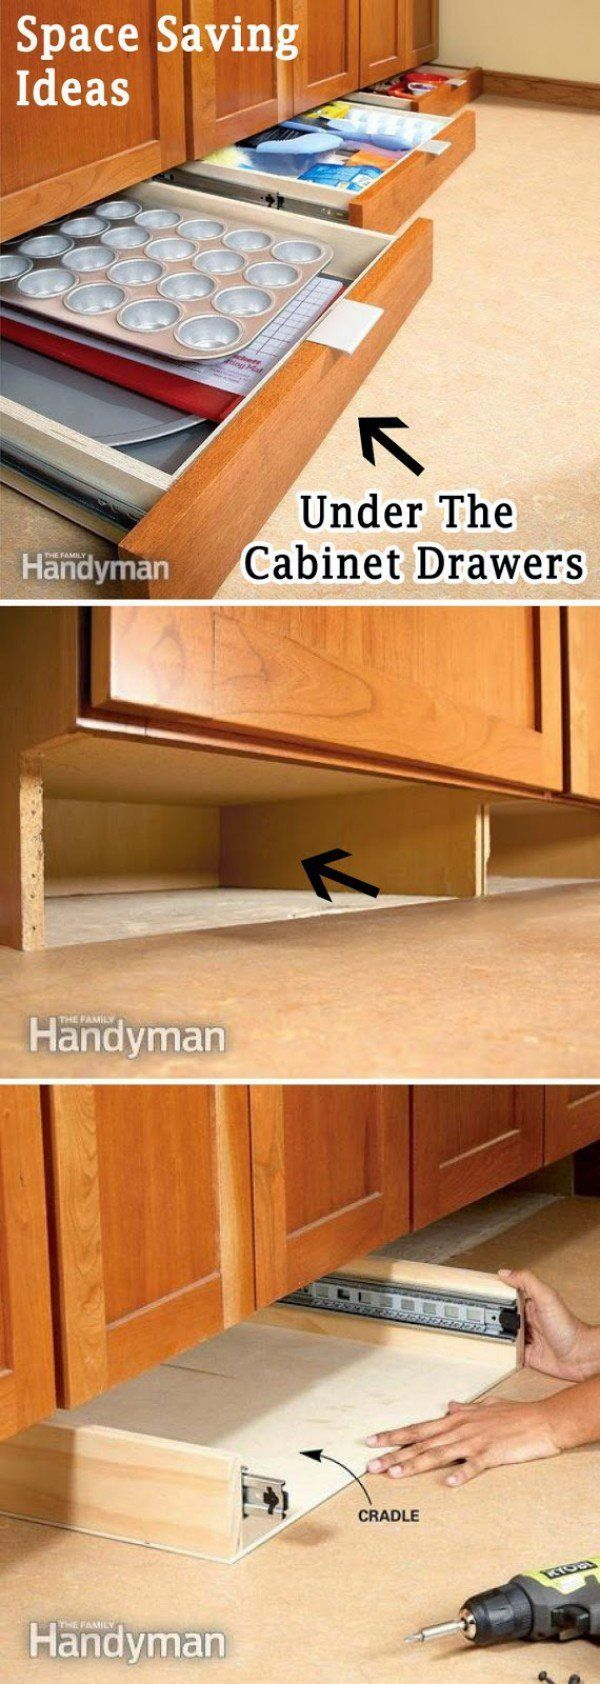 A clever idea to use the space under the cabinets for storage drawers @istandarddesign